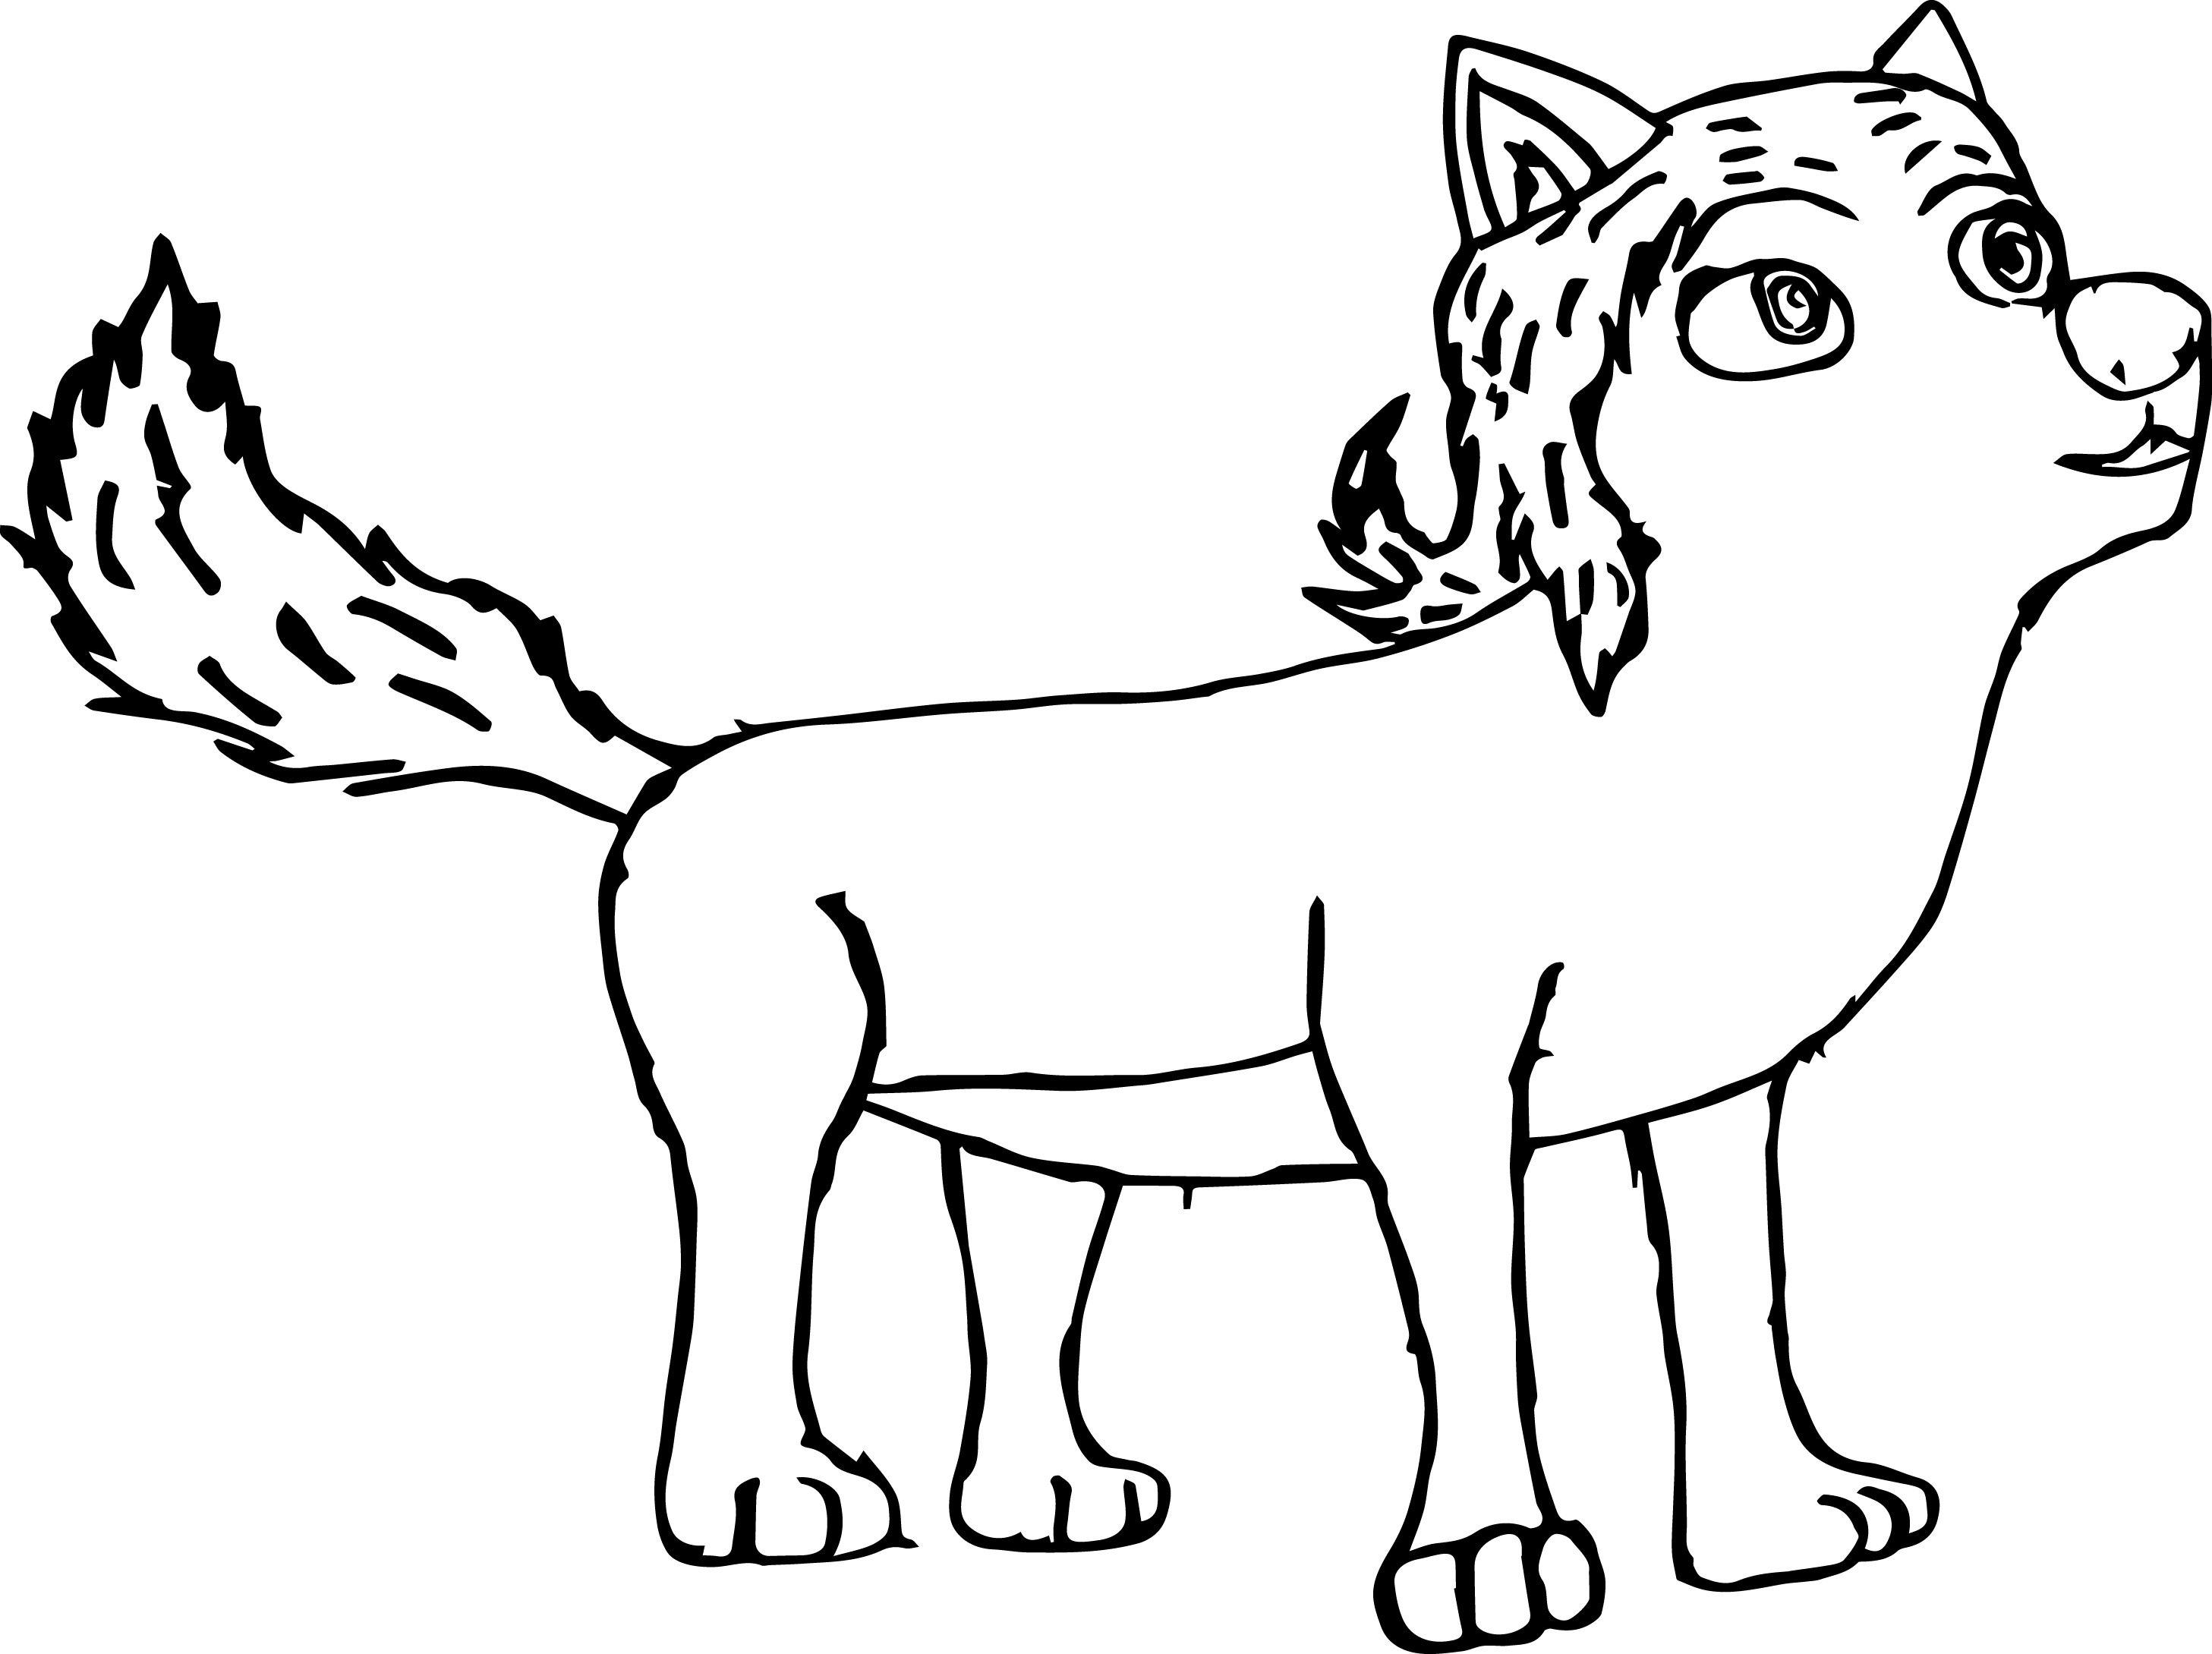 Cloudette Wolf Raider Coloring Page